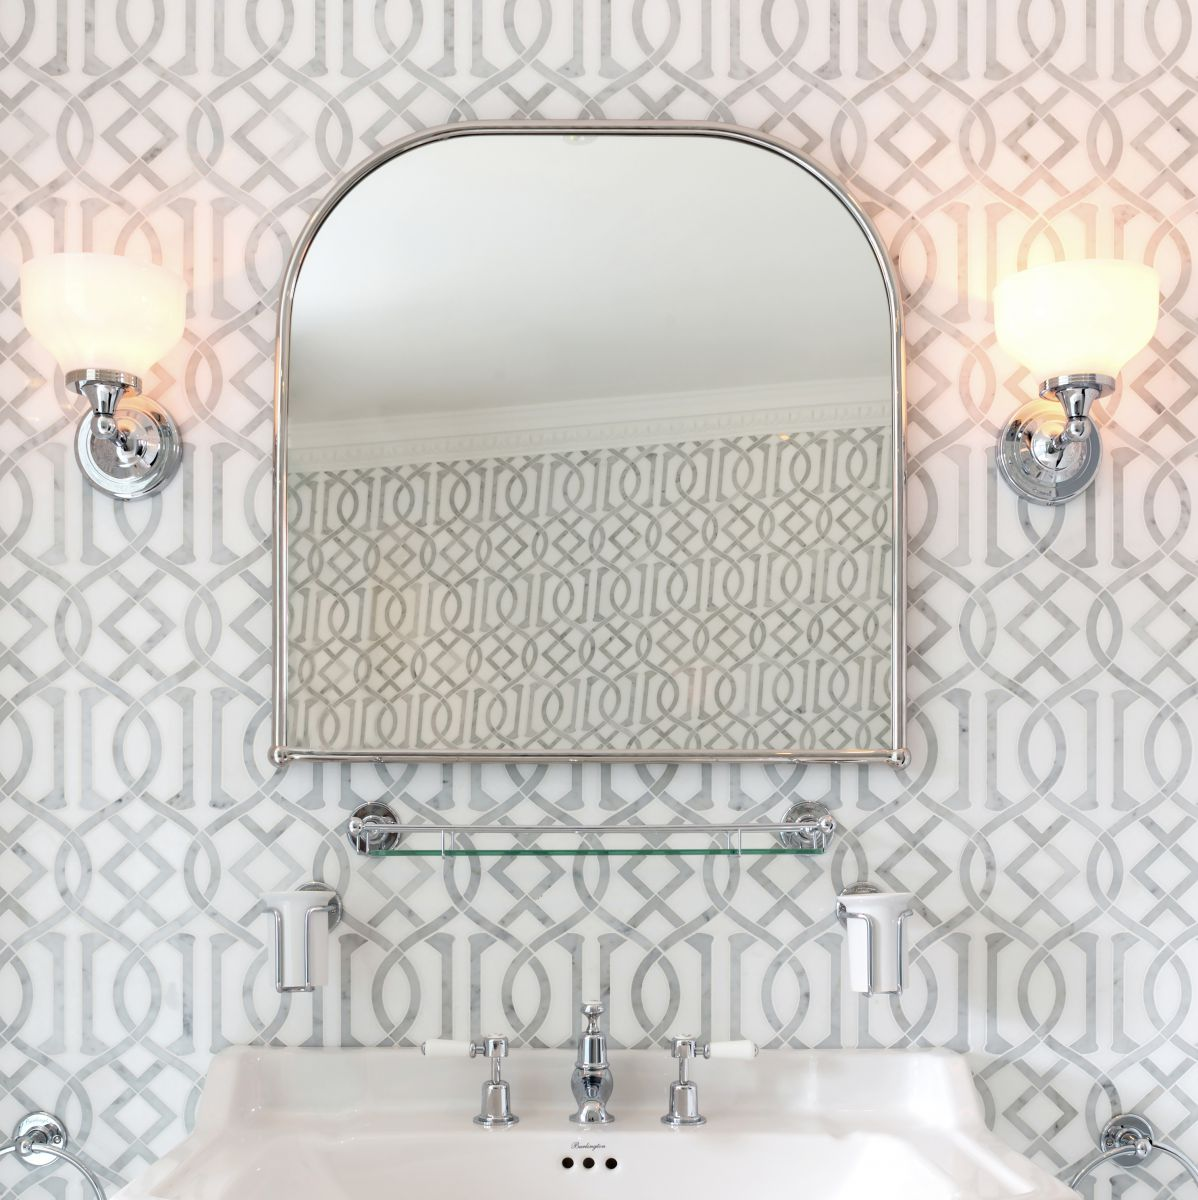 picture of a standard bathroom mirror